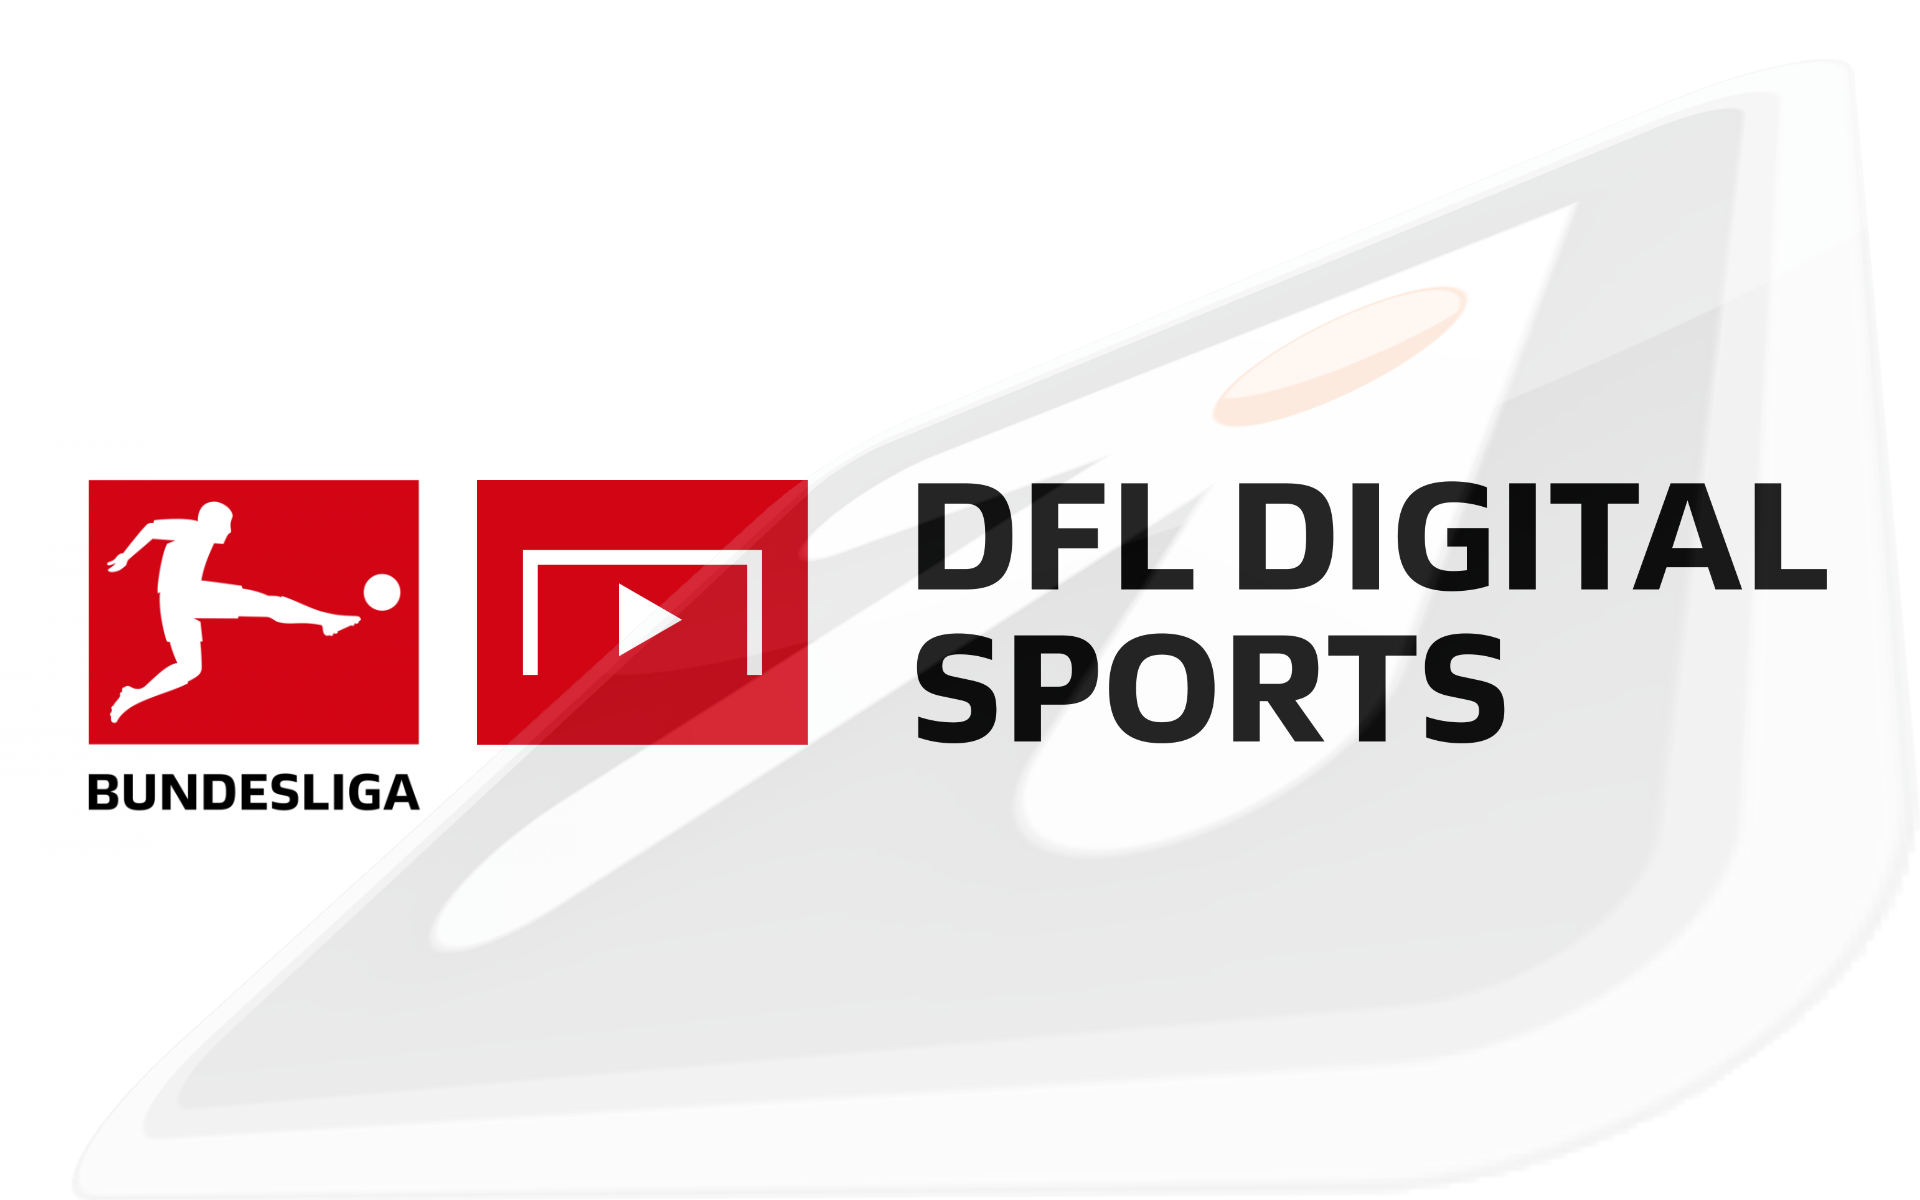 Fußball Bundesliga - DFL Digital Sports - Media & IT Maue